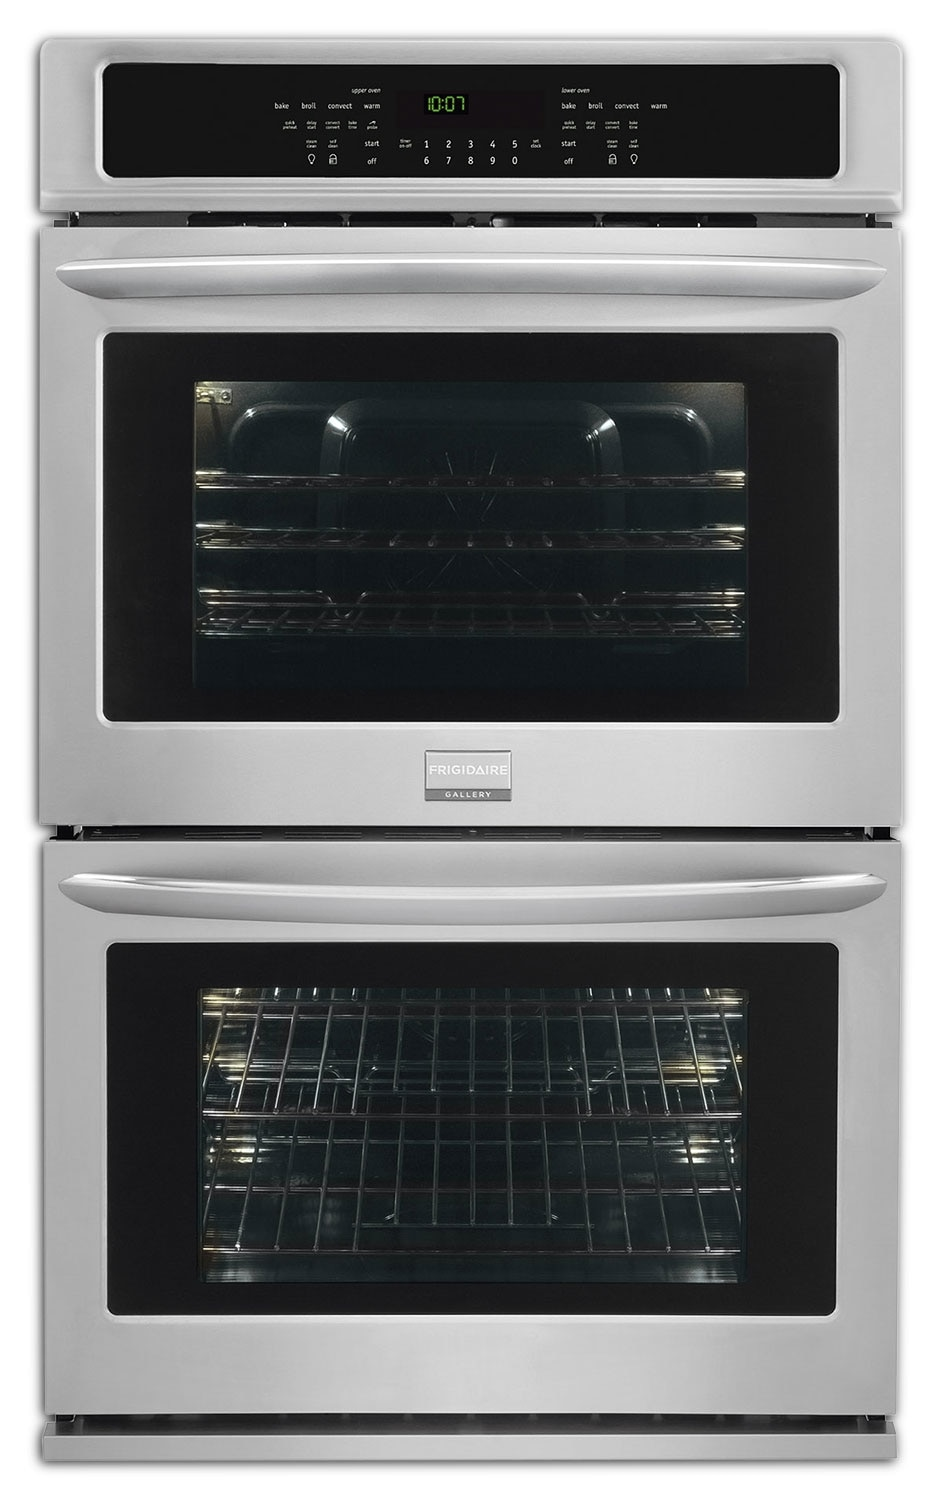 Cooking Products - Frigidaire Gallery Stainless Steel Double Convection Wall Oven (9.2 Cu. Ft.) - FGET3065PF